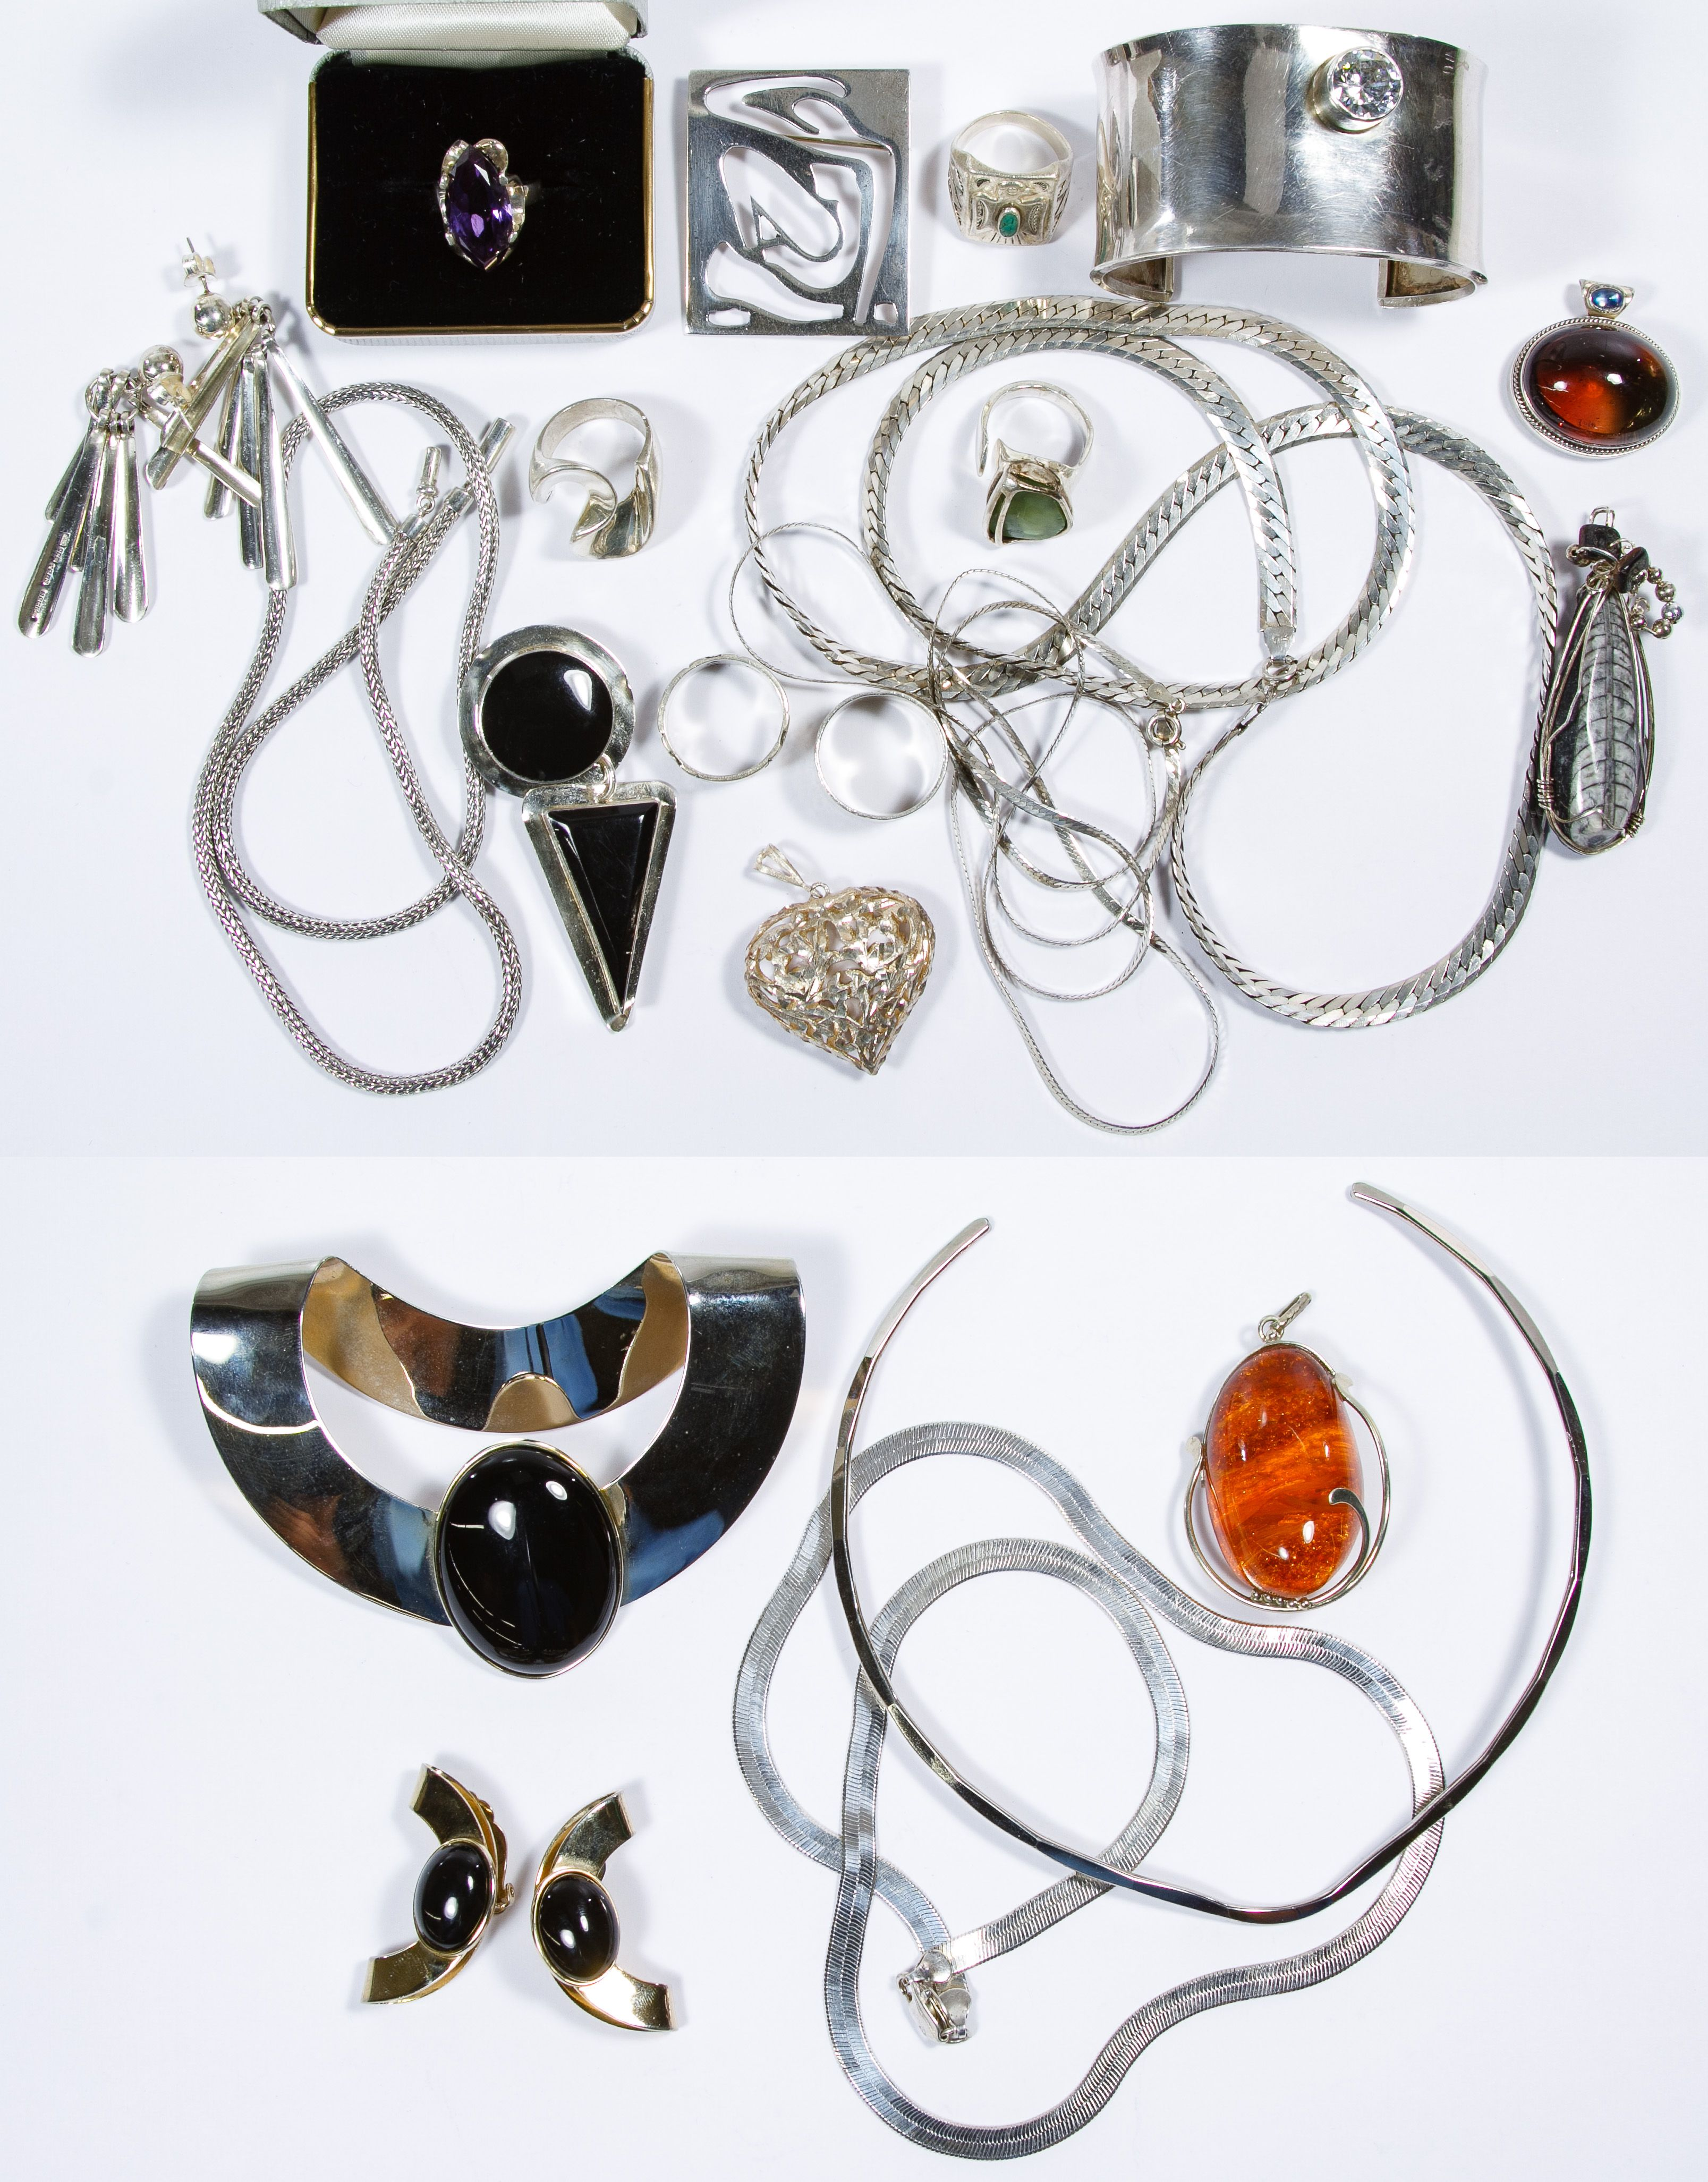 6a6a82528 Lot 639: Sterling Silver Jewelry Assortment; Including necklaces, pendants,  rings and earrings, most marked 925 or sterling; together with silver-tone  ...